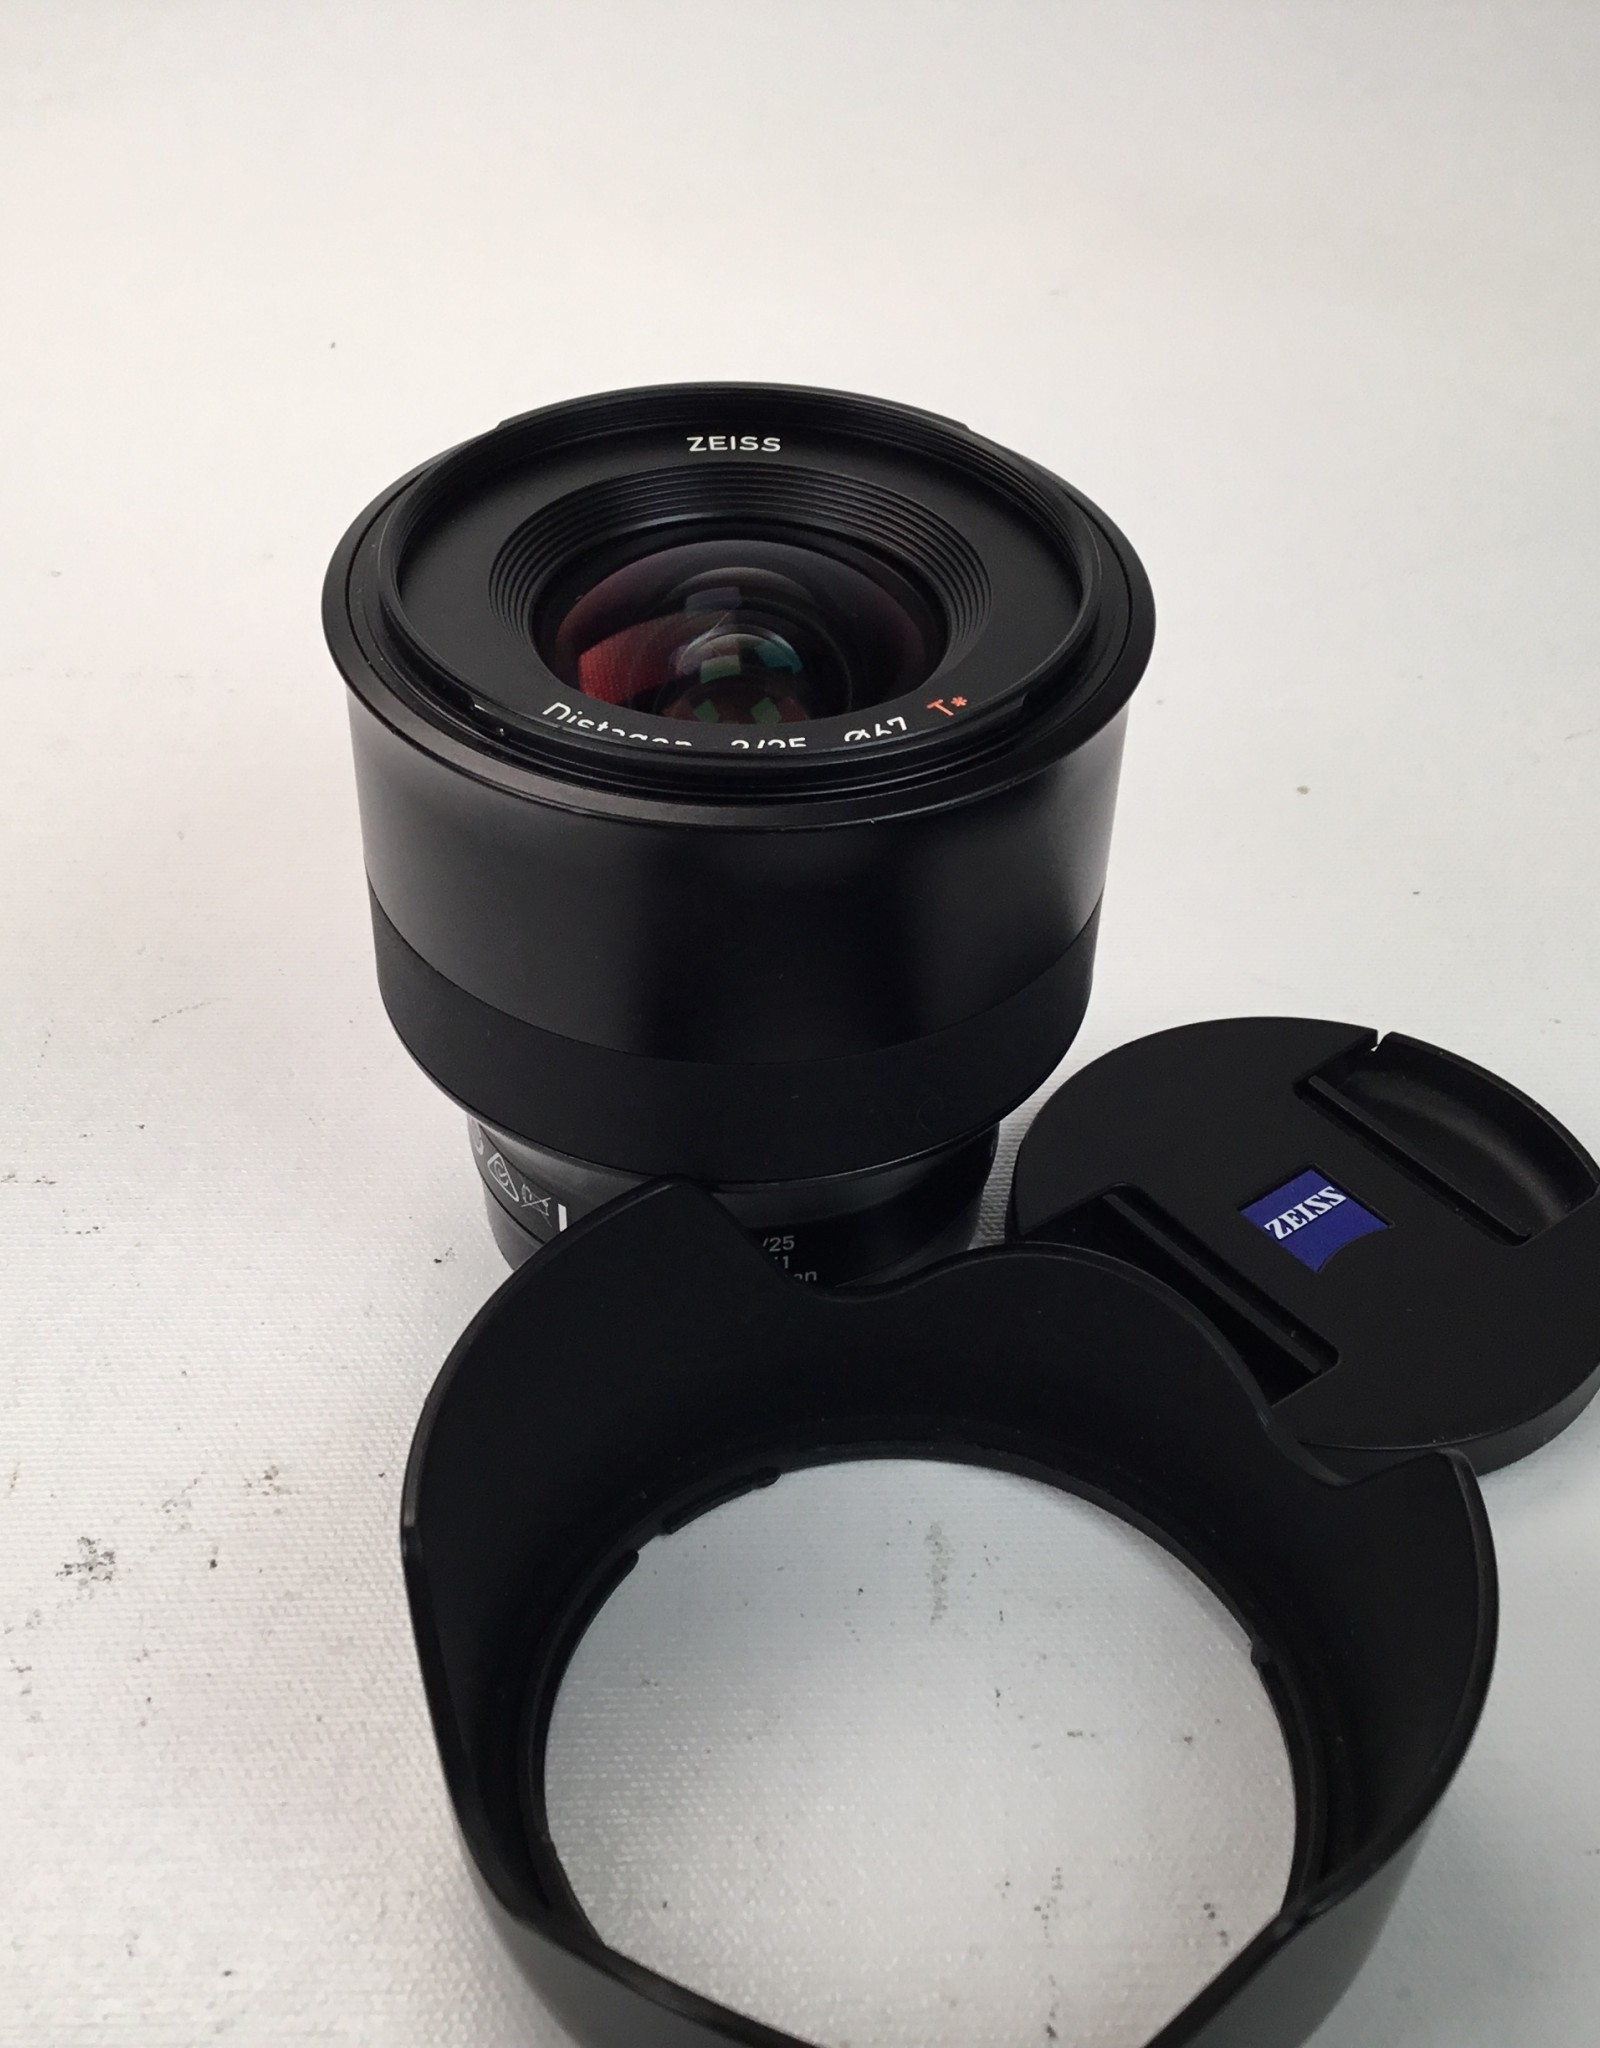 ZEISS Zeiss Batis 25mm f2 Lens for Sony FE Used EX-